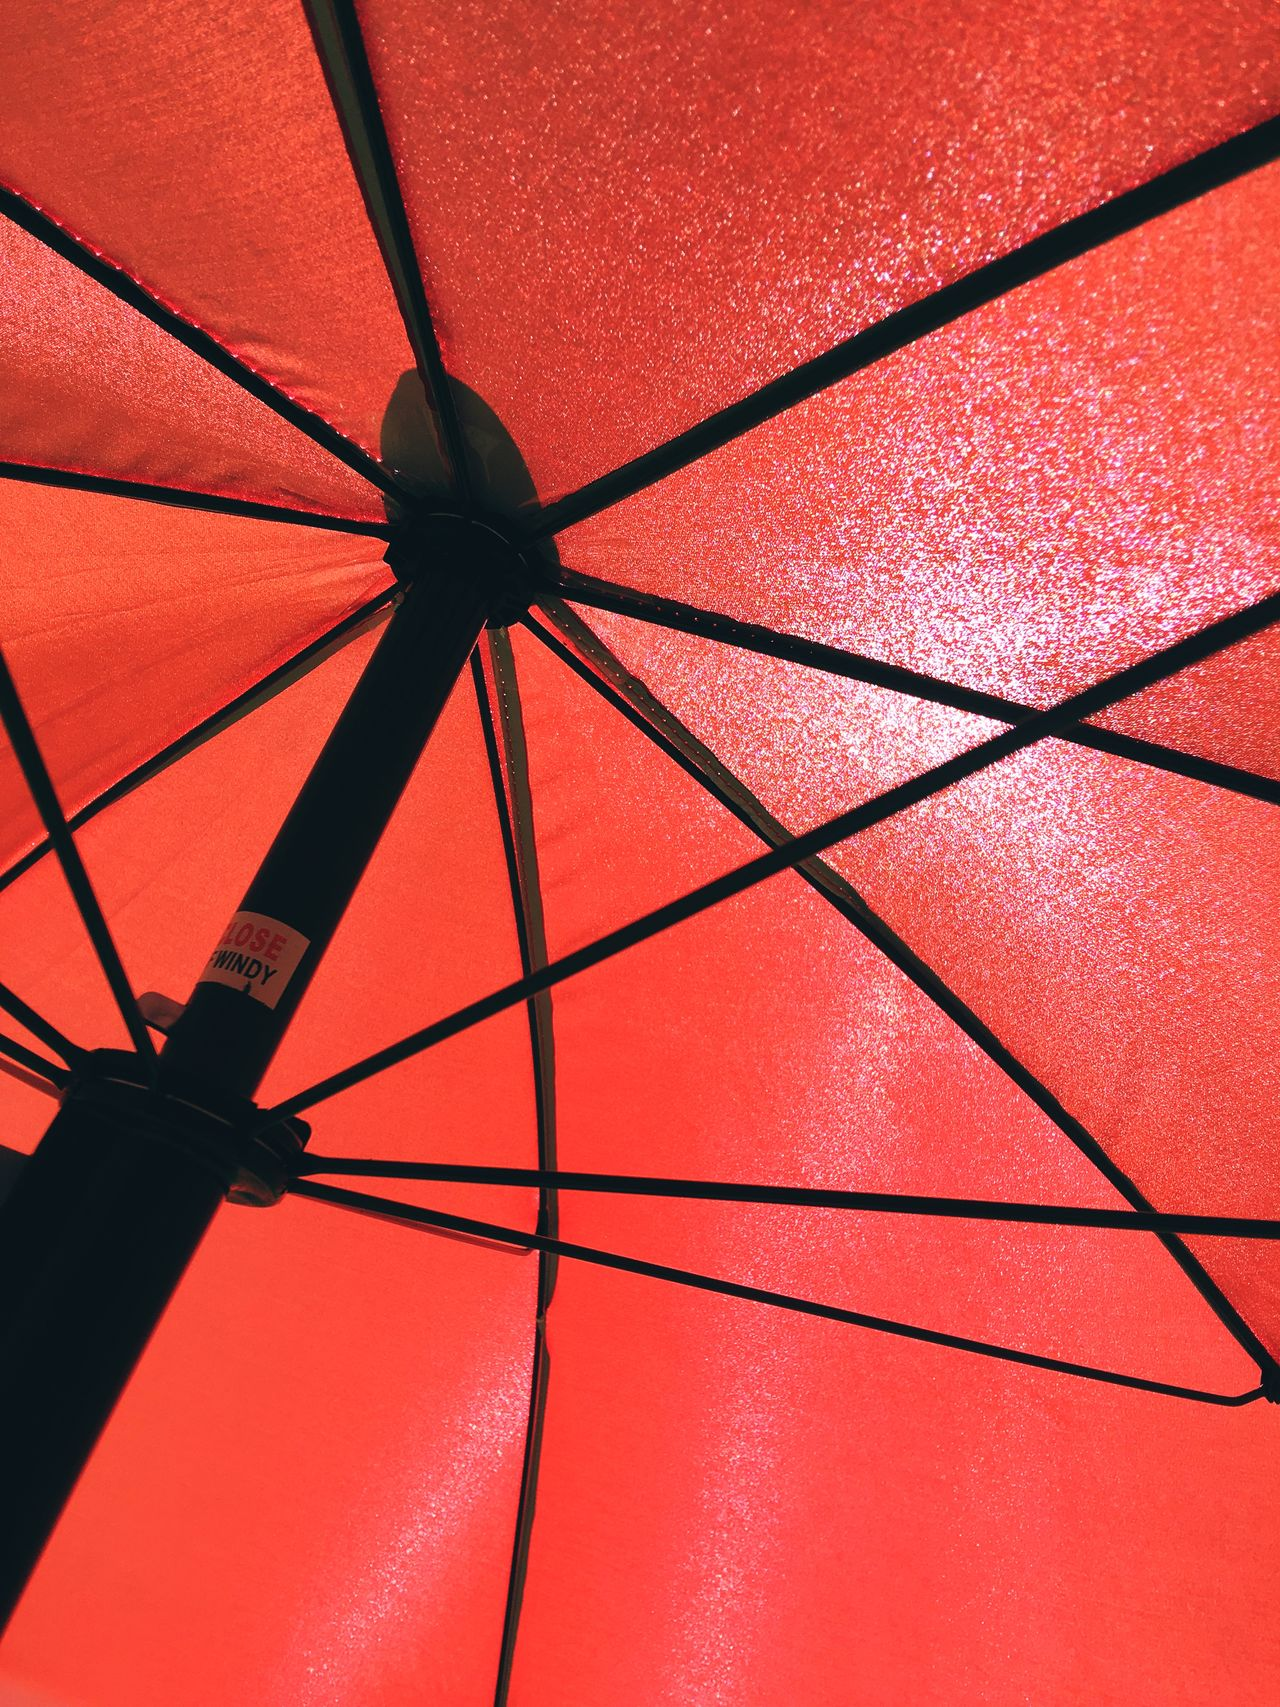 Close-Up Of Red Parasol Back Lit Beach Umbrella Close-up Color Image Day Directly Below Full Frame Low Angle View No People Outdoors Parasol Photo Photography Protection Red Shelter Single Object Summer Sunlight Sunshade Vertical